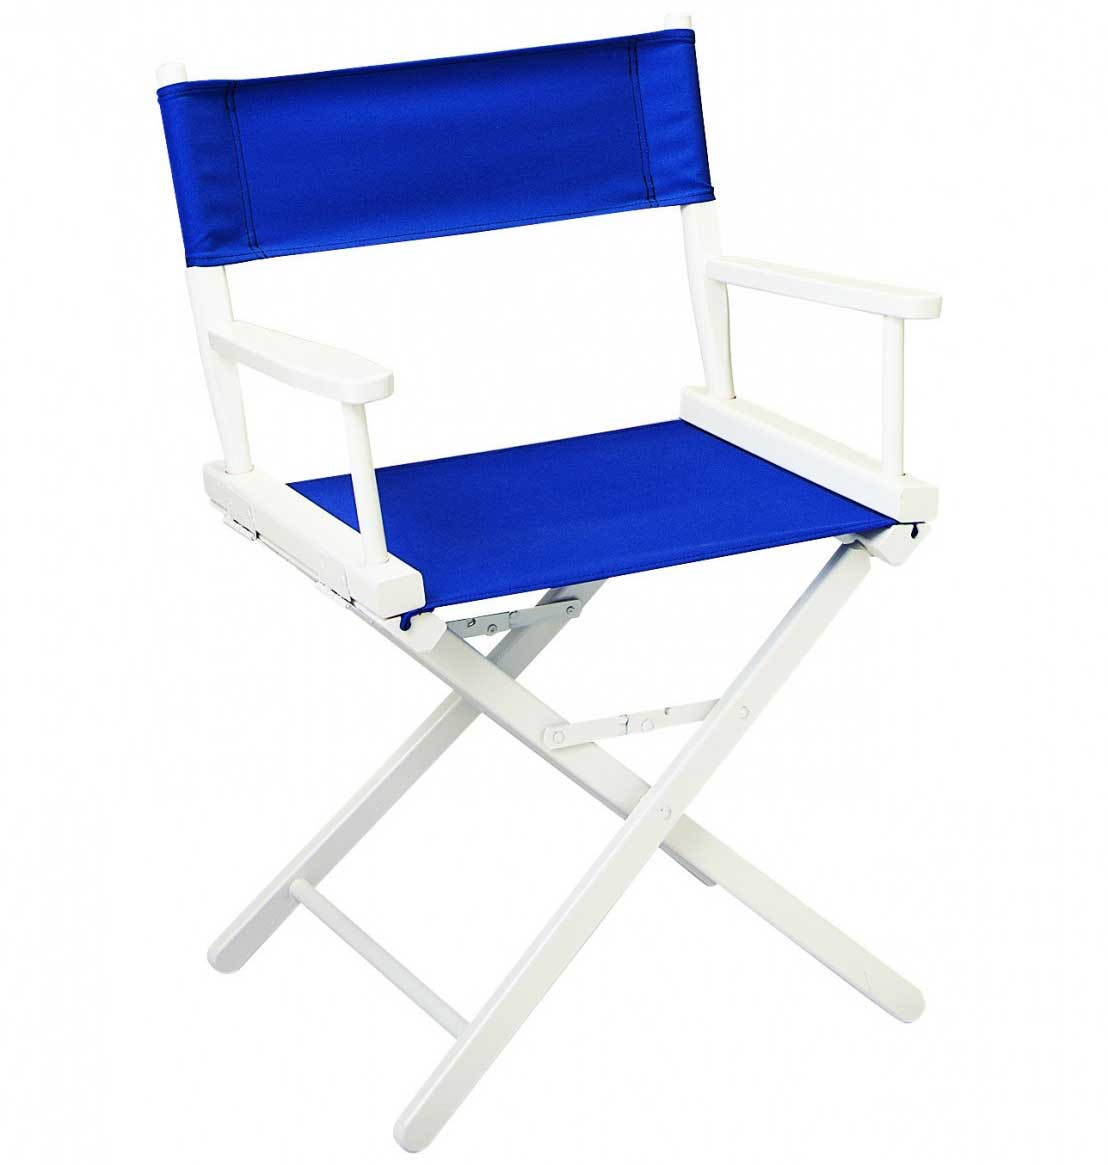 Gold Medal contemporary blue directors chair in white frame